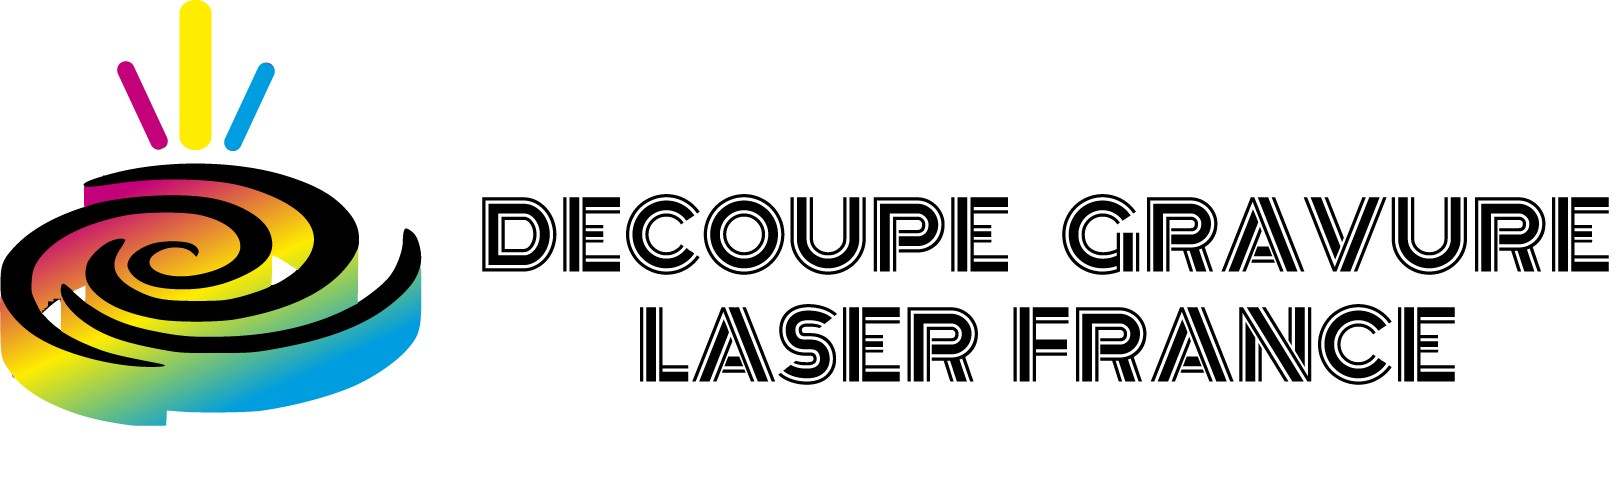 DECOUPE-LASER-FRANCE